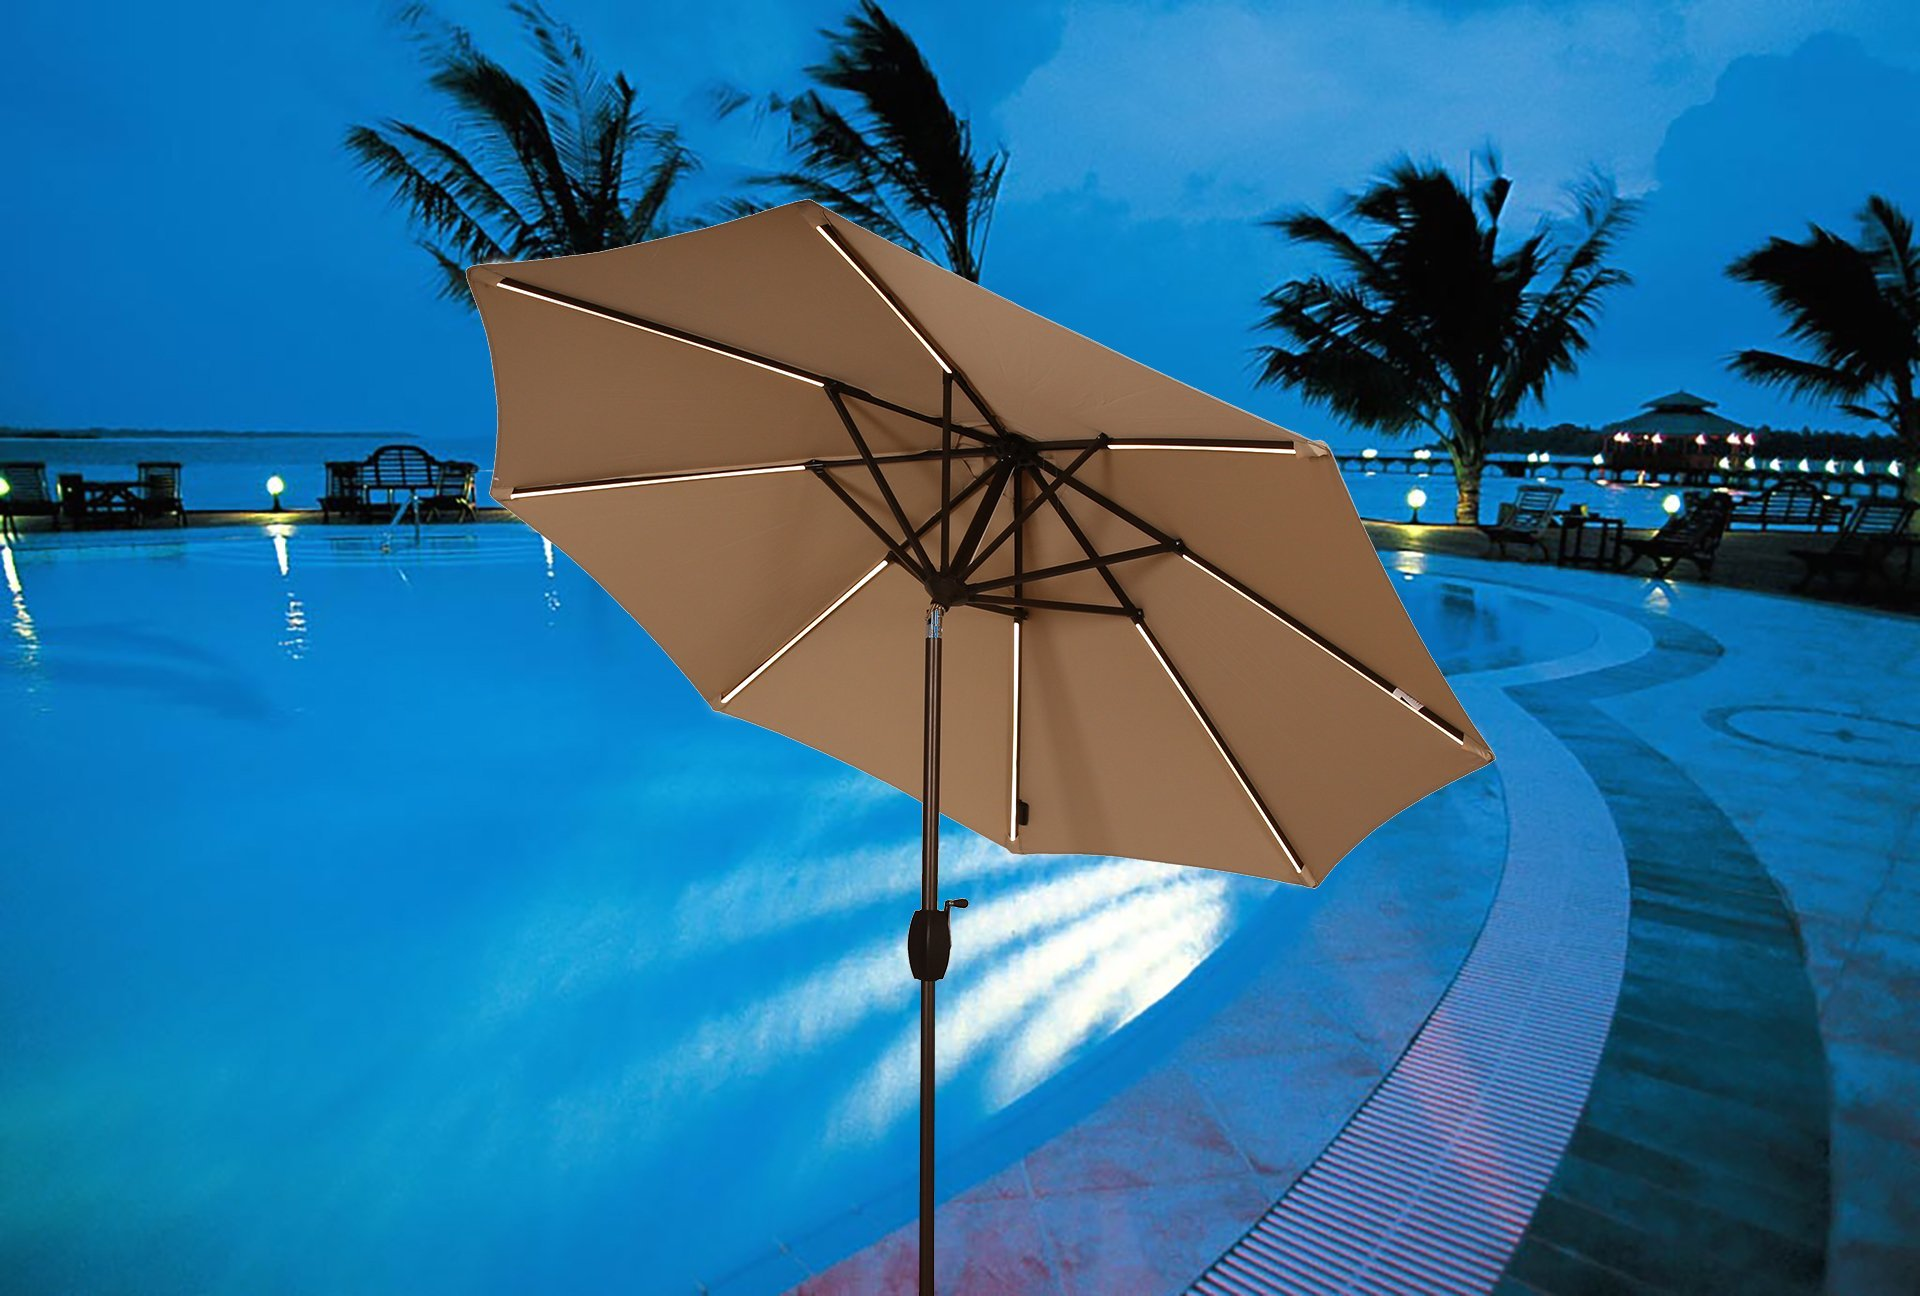 Ulax Furniture 9 Ft Solar Powered LED Lights Patio Umbrella Aluminum Outdoor Market Umbrella with Tilt and Crank system, Air Vent, 100% Polyester, Beige by Ulax furniture (Image #4)